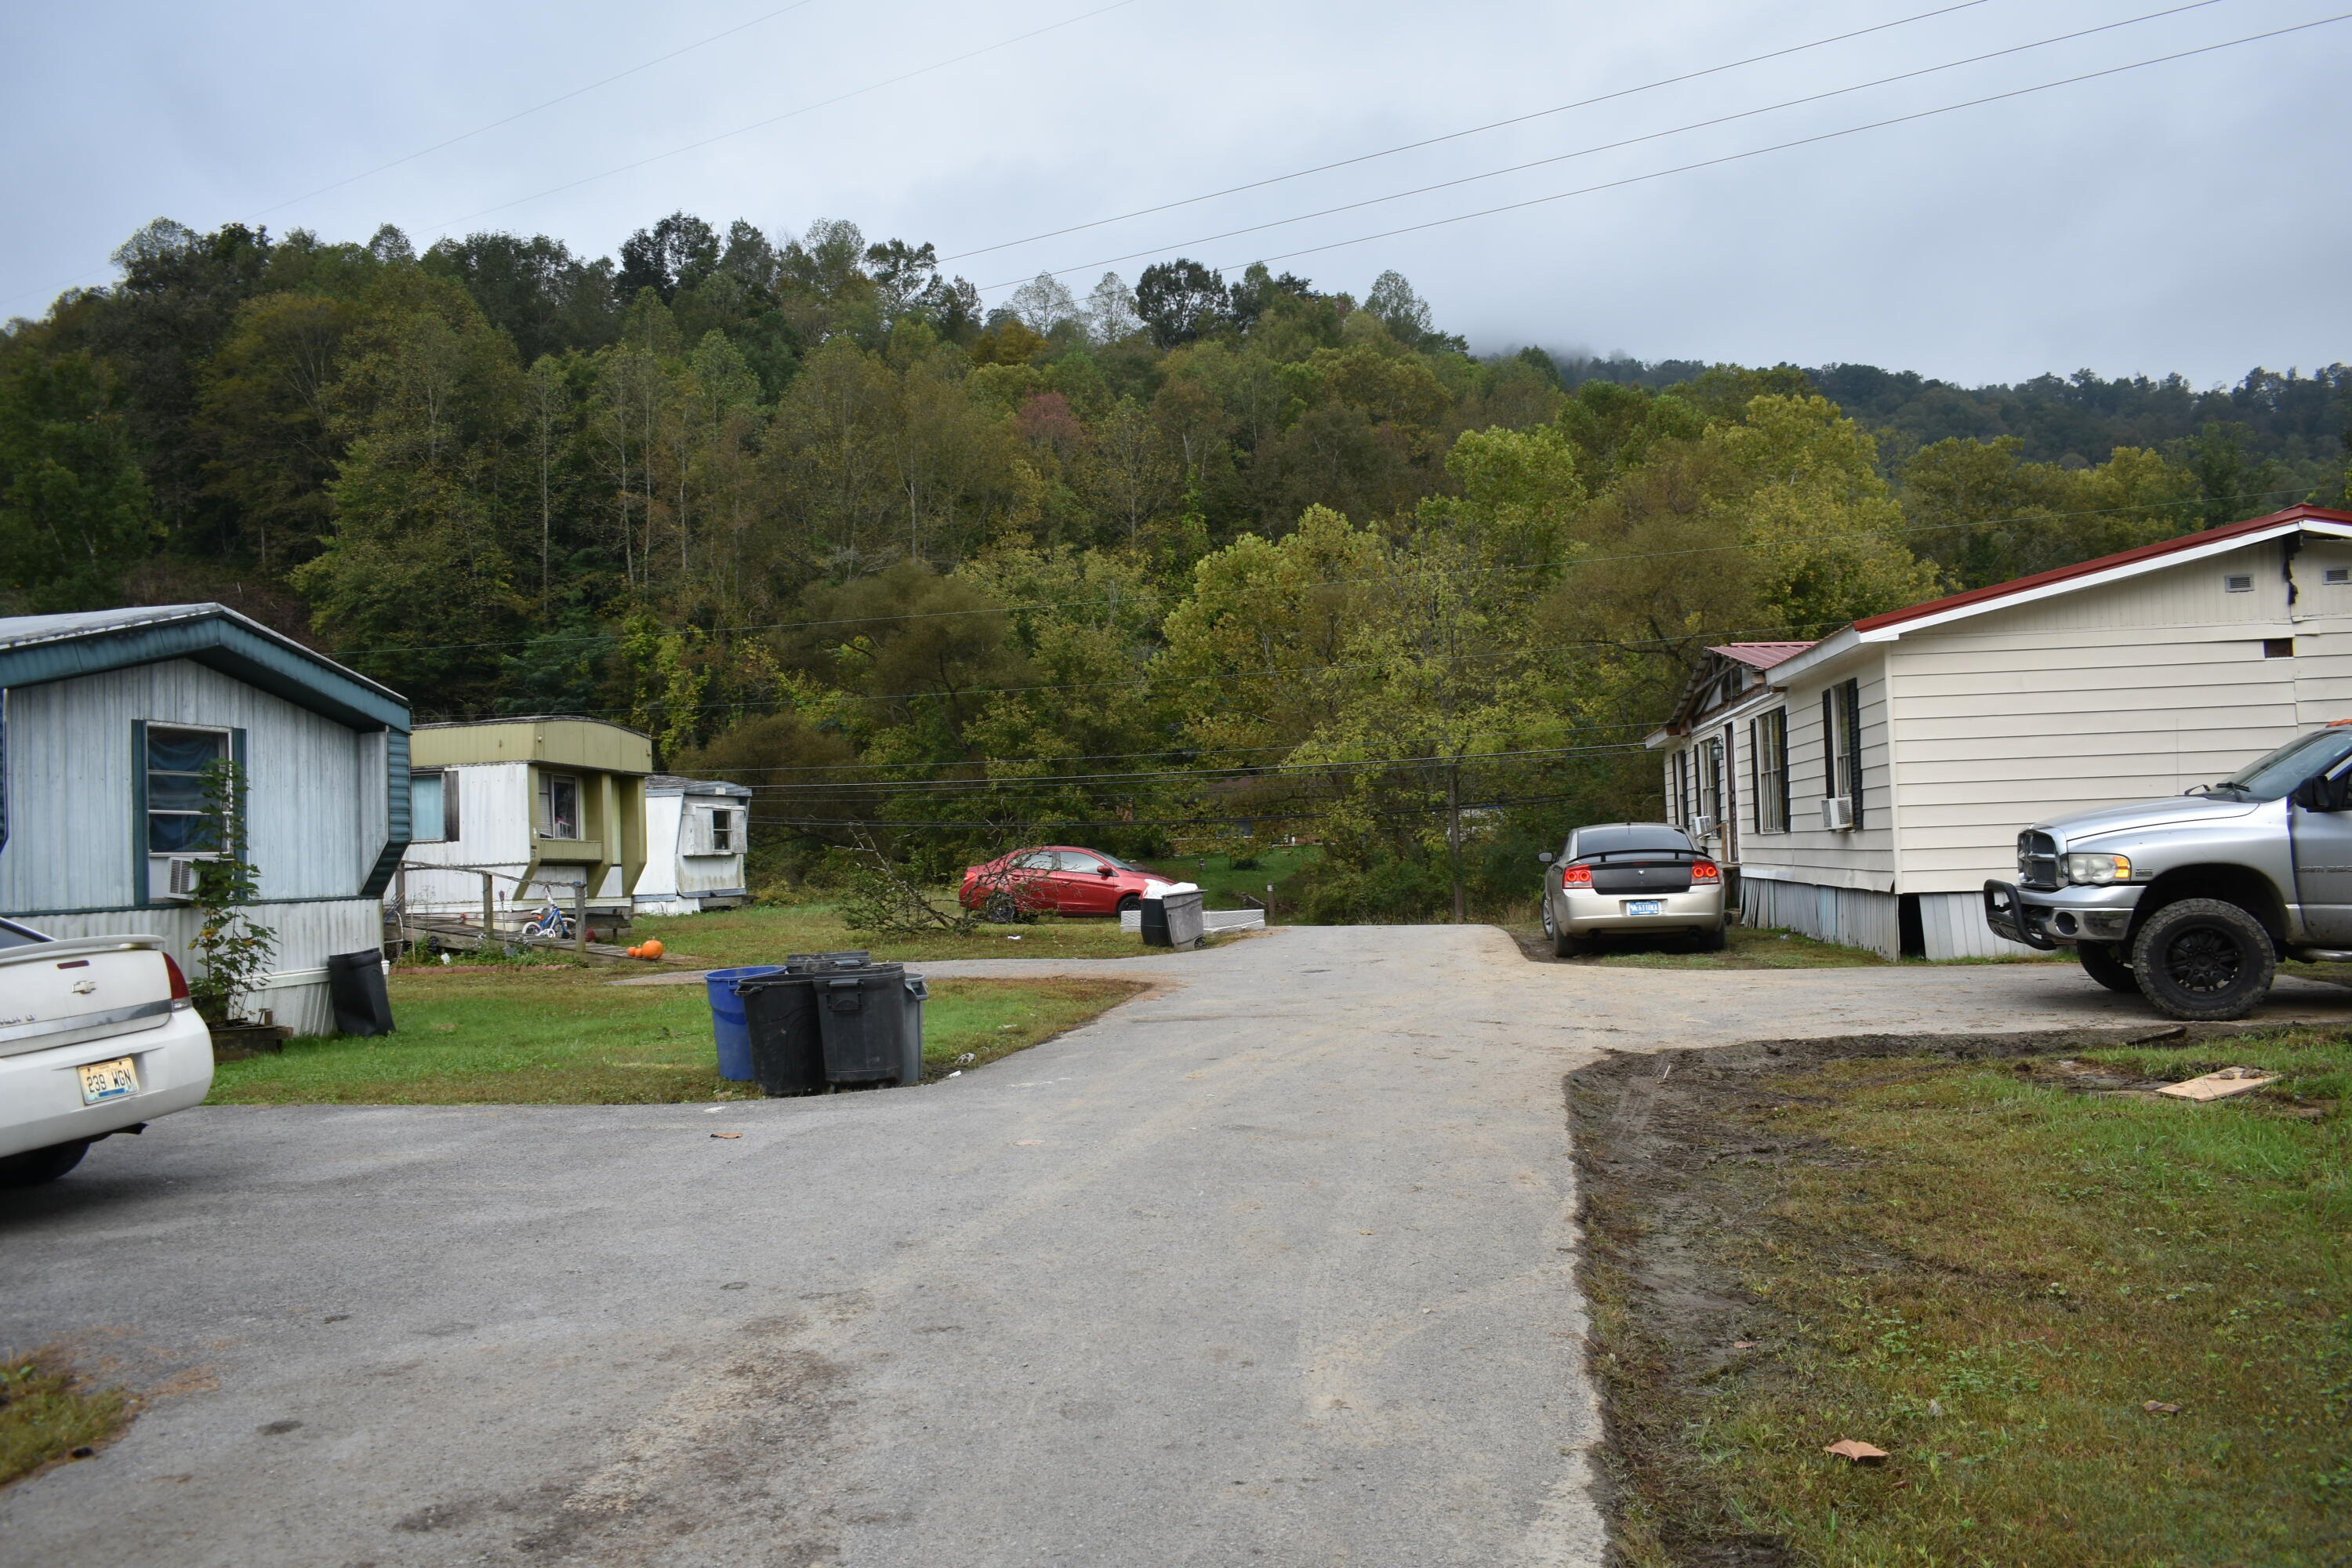 000 Old Pineville Pike, Middlesboro, KY 40965